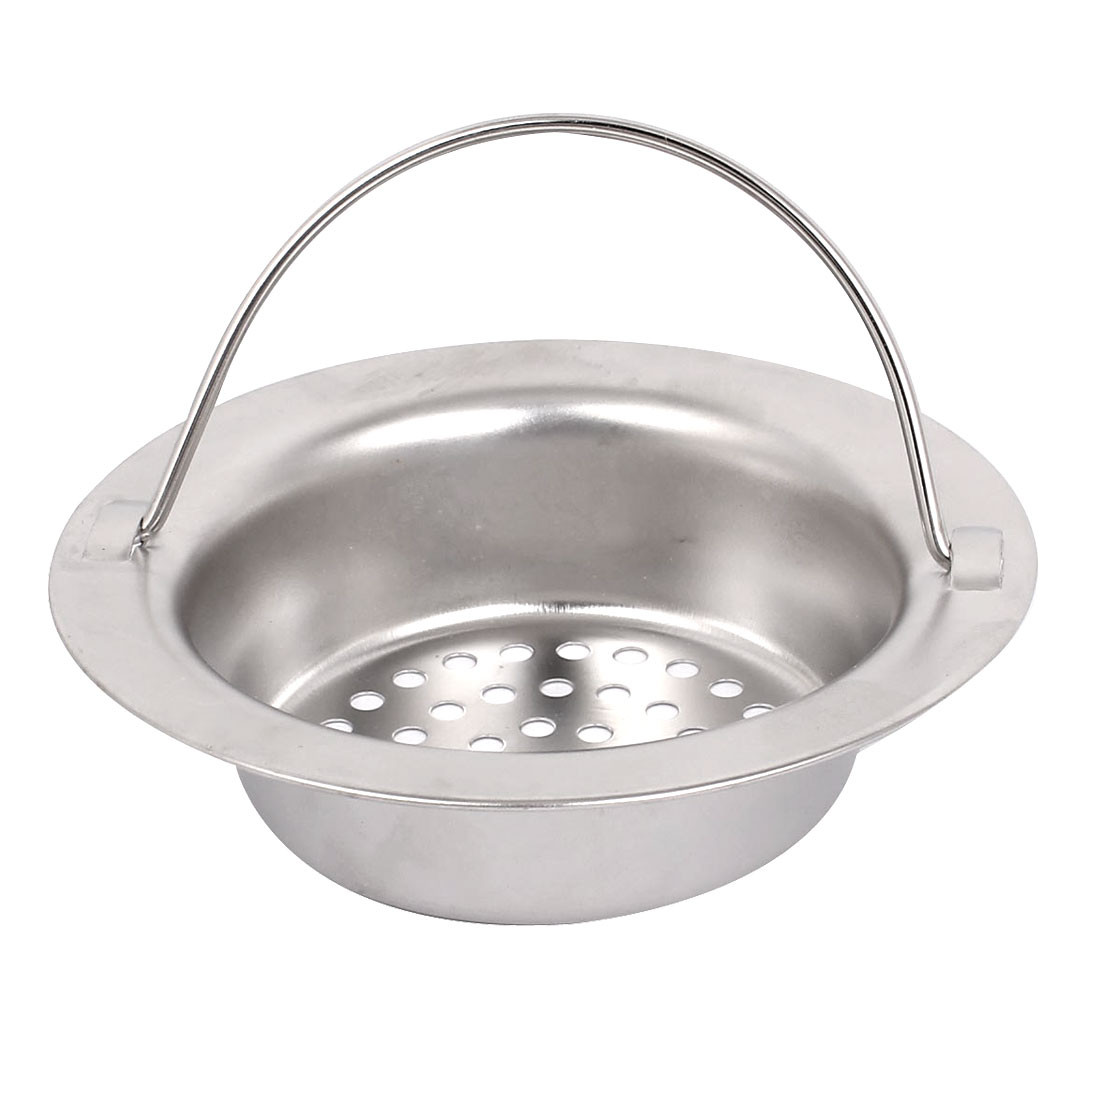 Kitchen Bathroom Metal Mesh Hole Design Sink Strainer Basket Drain Bathtub Net w Handle